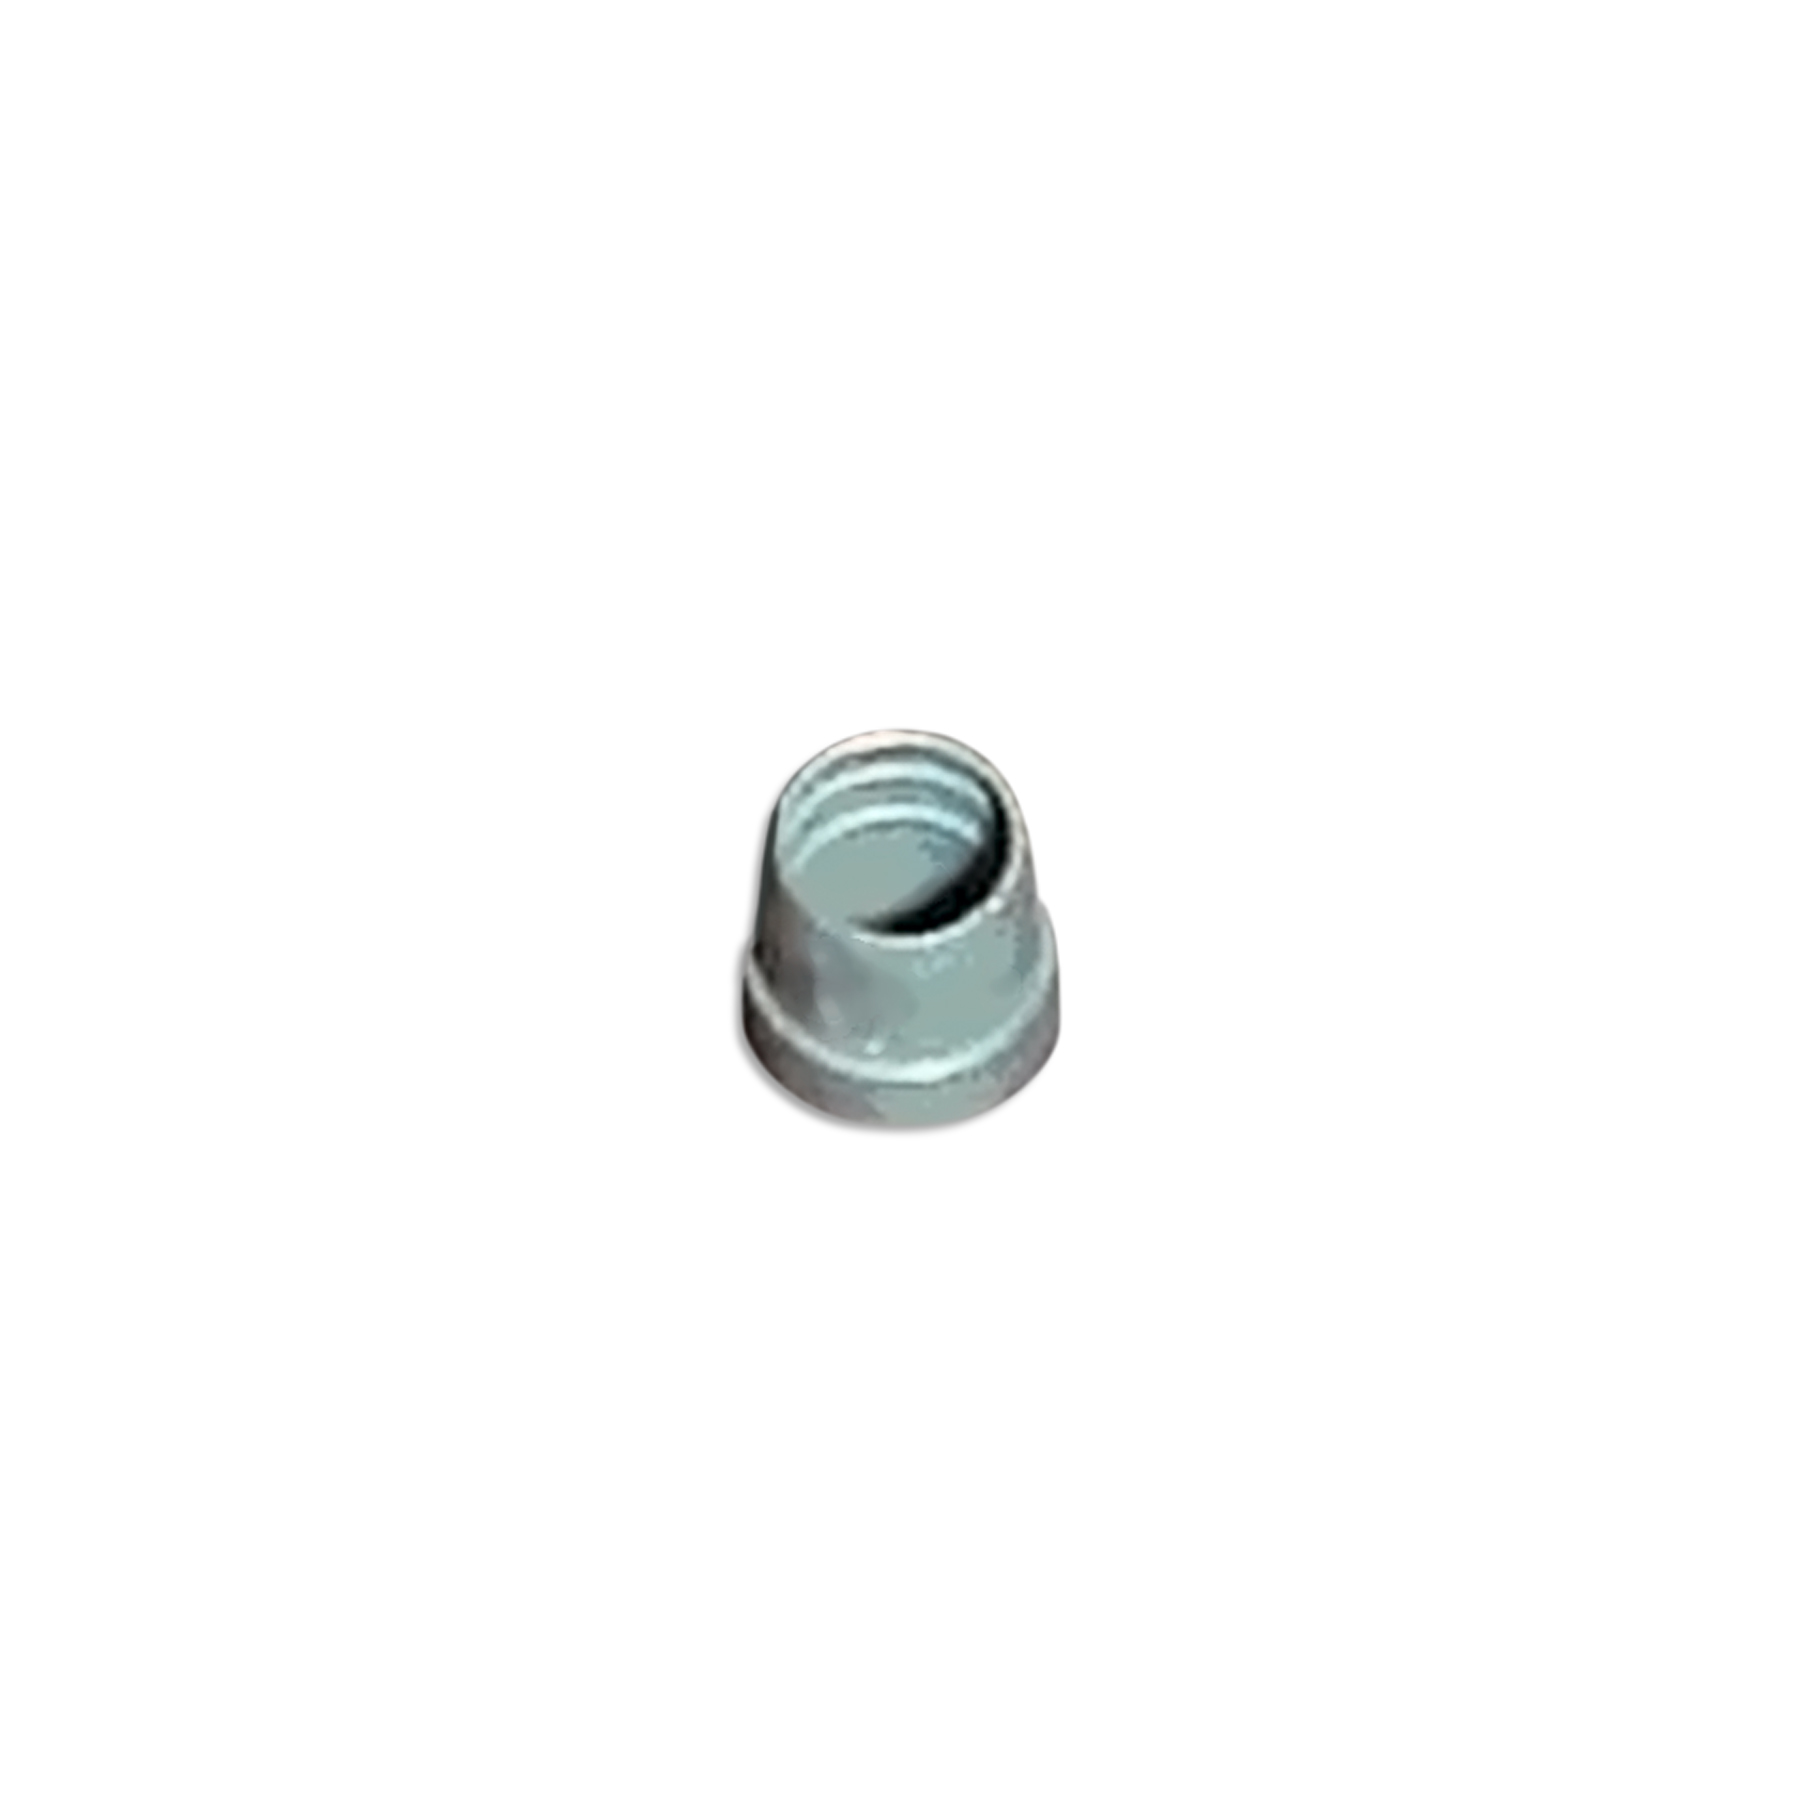 CONS Compression Sleeve Fitting, 6.0 mm